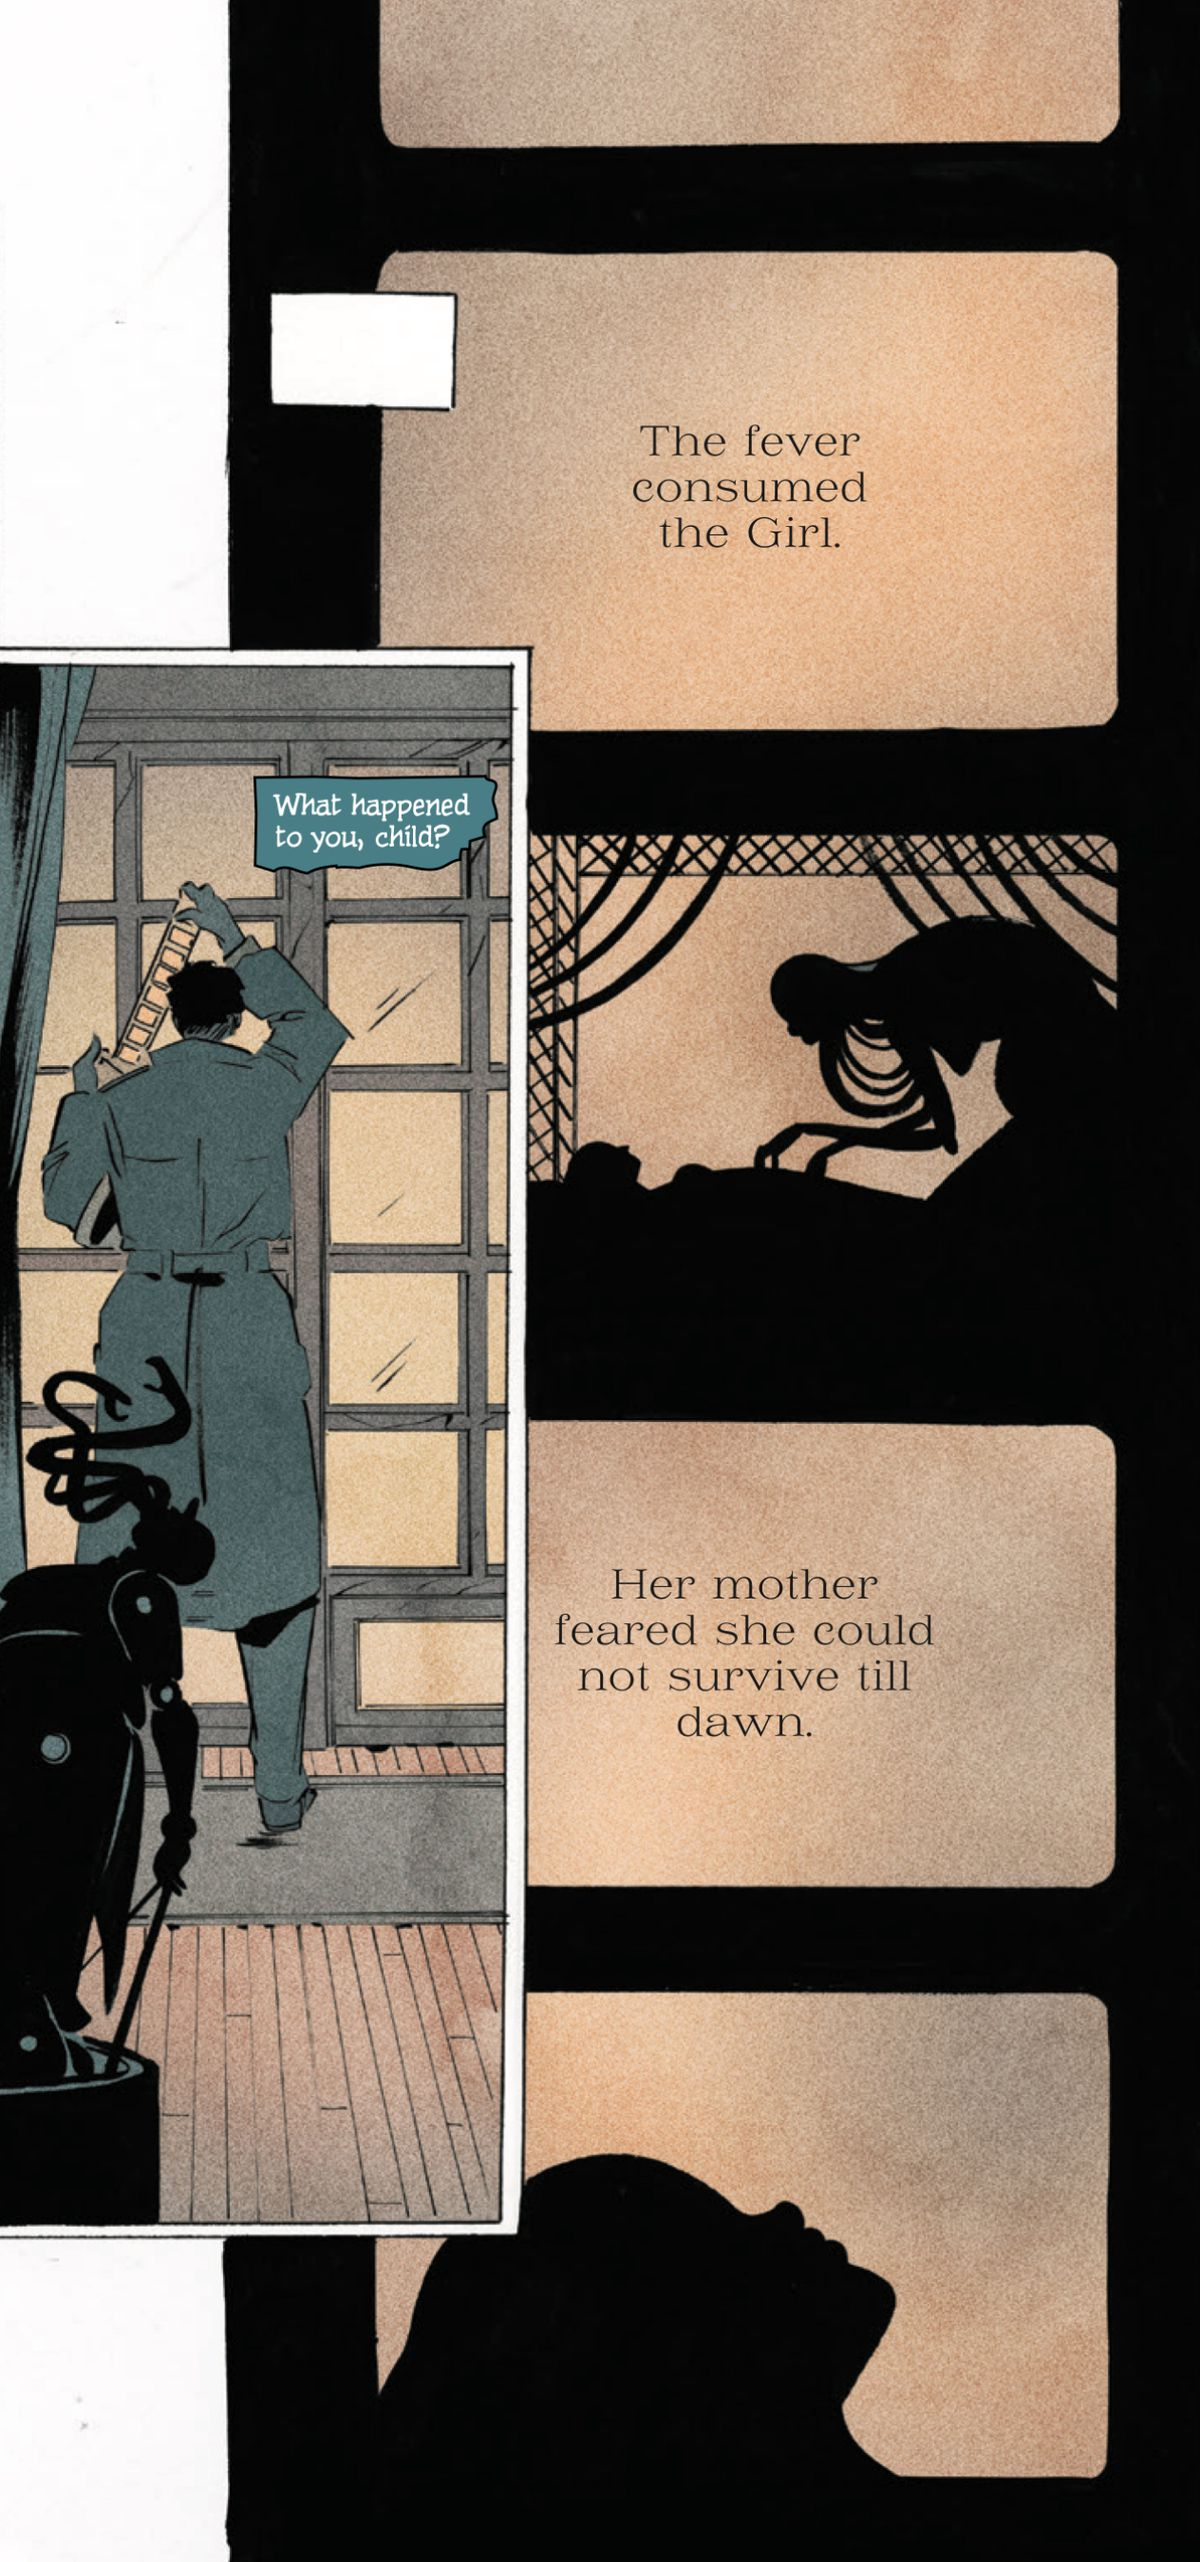 A private investigator studies a strip of film stock depicting a sick girl, in Pretty Deadly: The Rat #1, Image Comics.